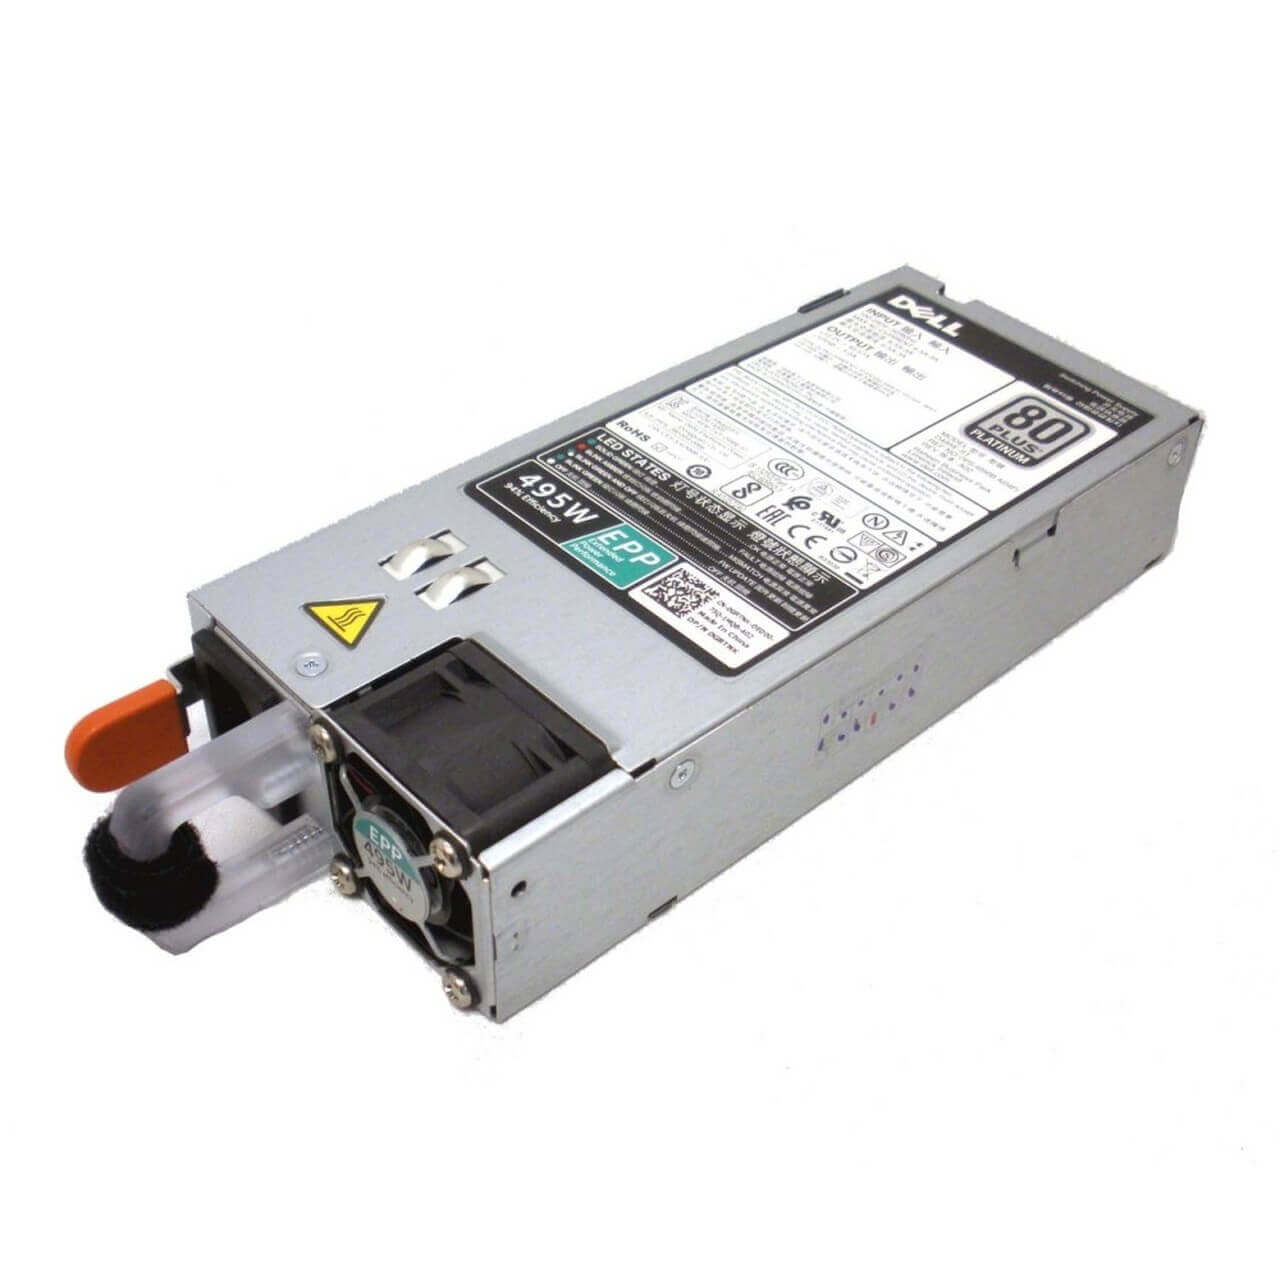 Buy & save on Dell Power Supply from your trusted partners at Flagship Technologies.